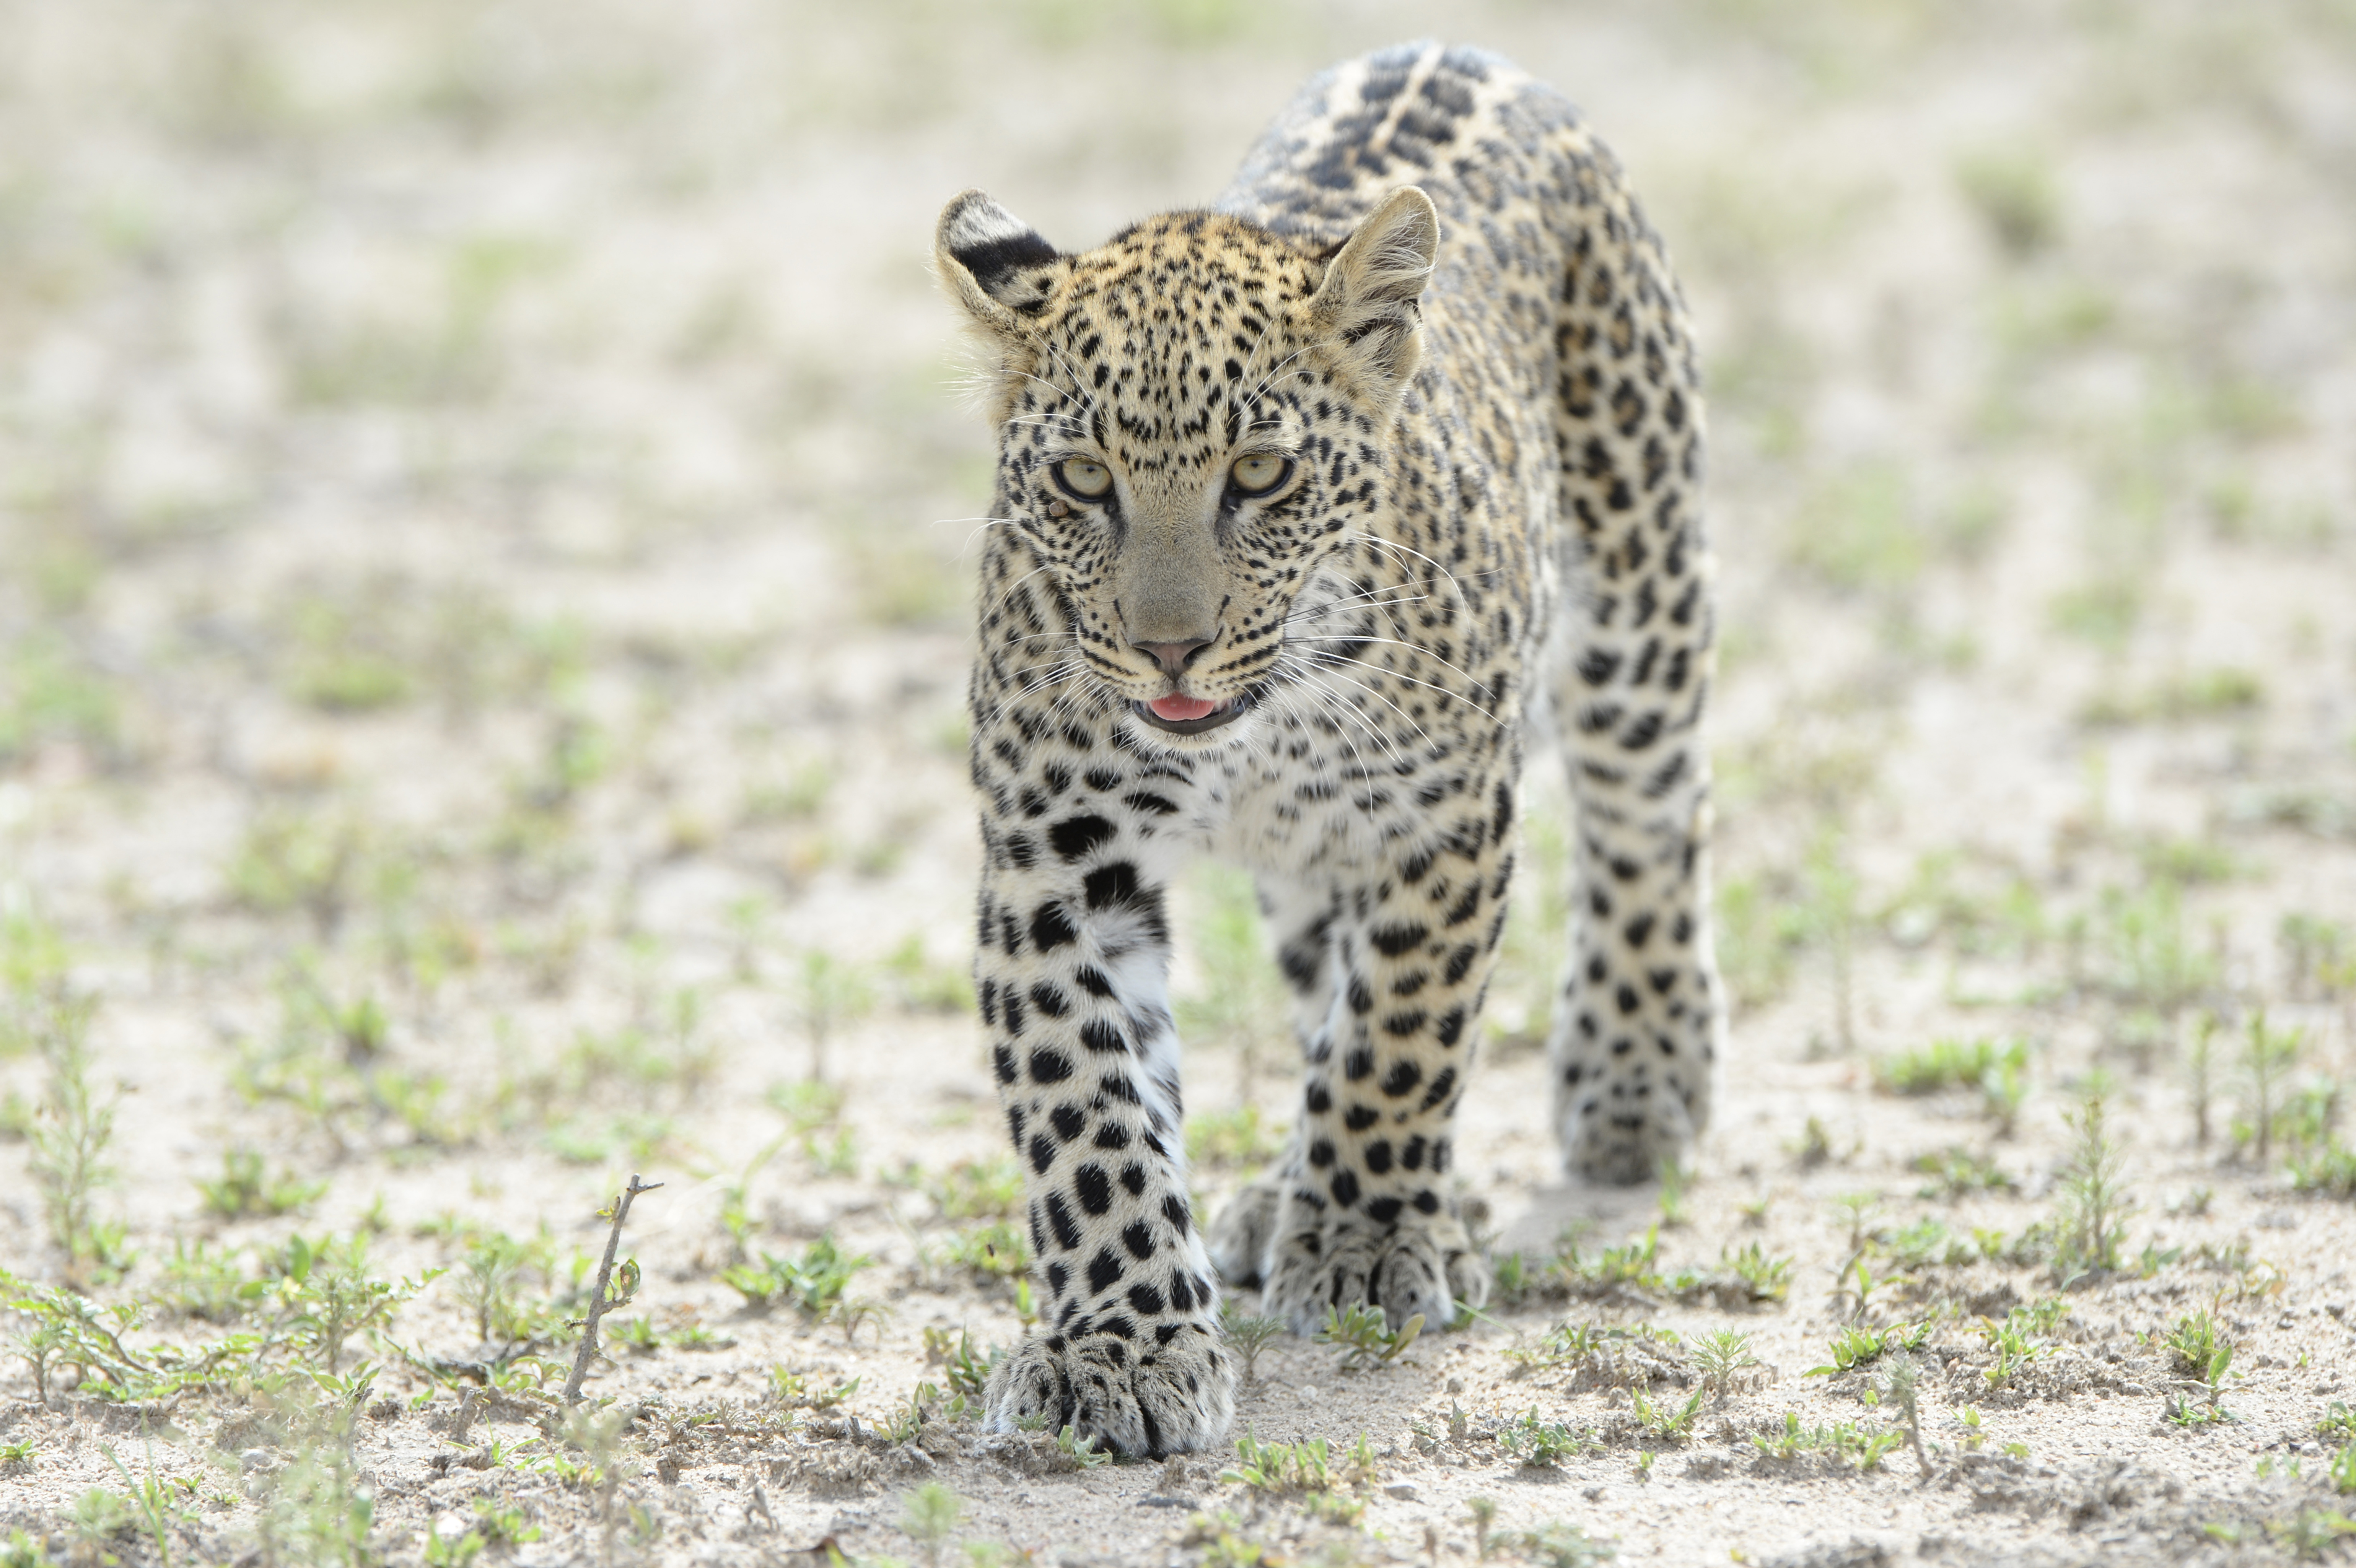 Leopardenbaby (6 Monate) von Leopardin Maschaba  ©Johannes Ratermann